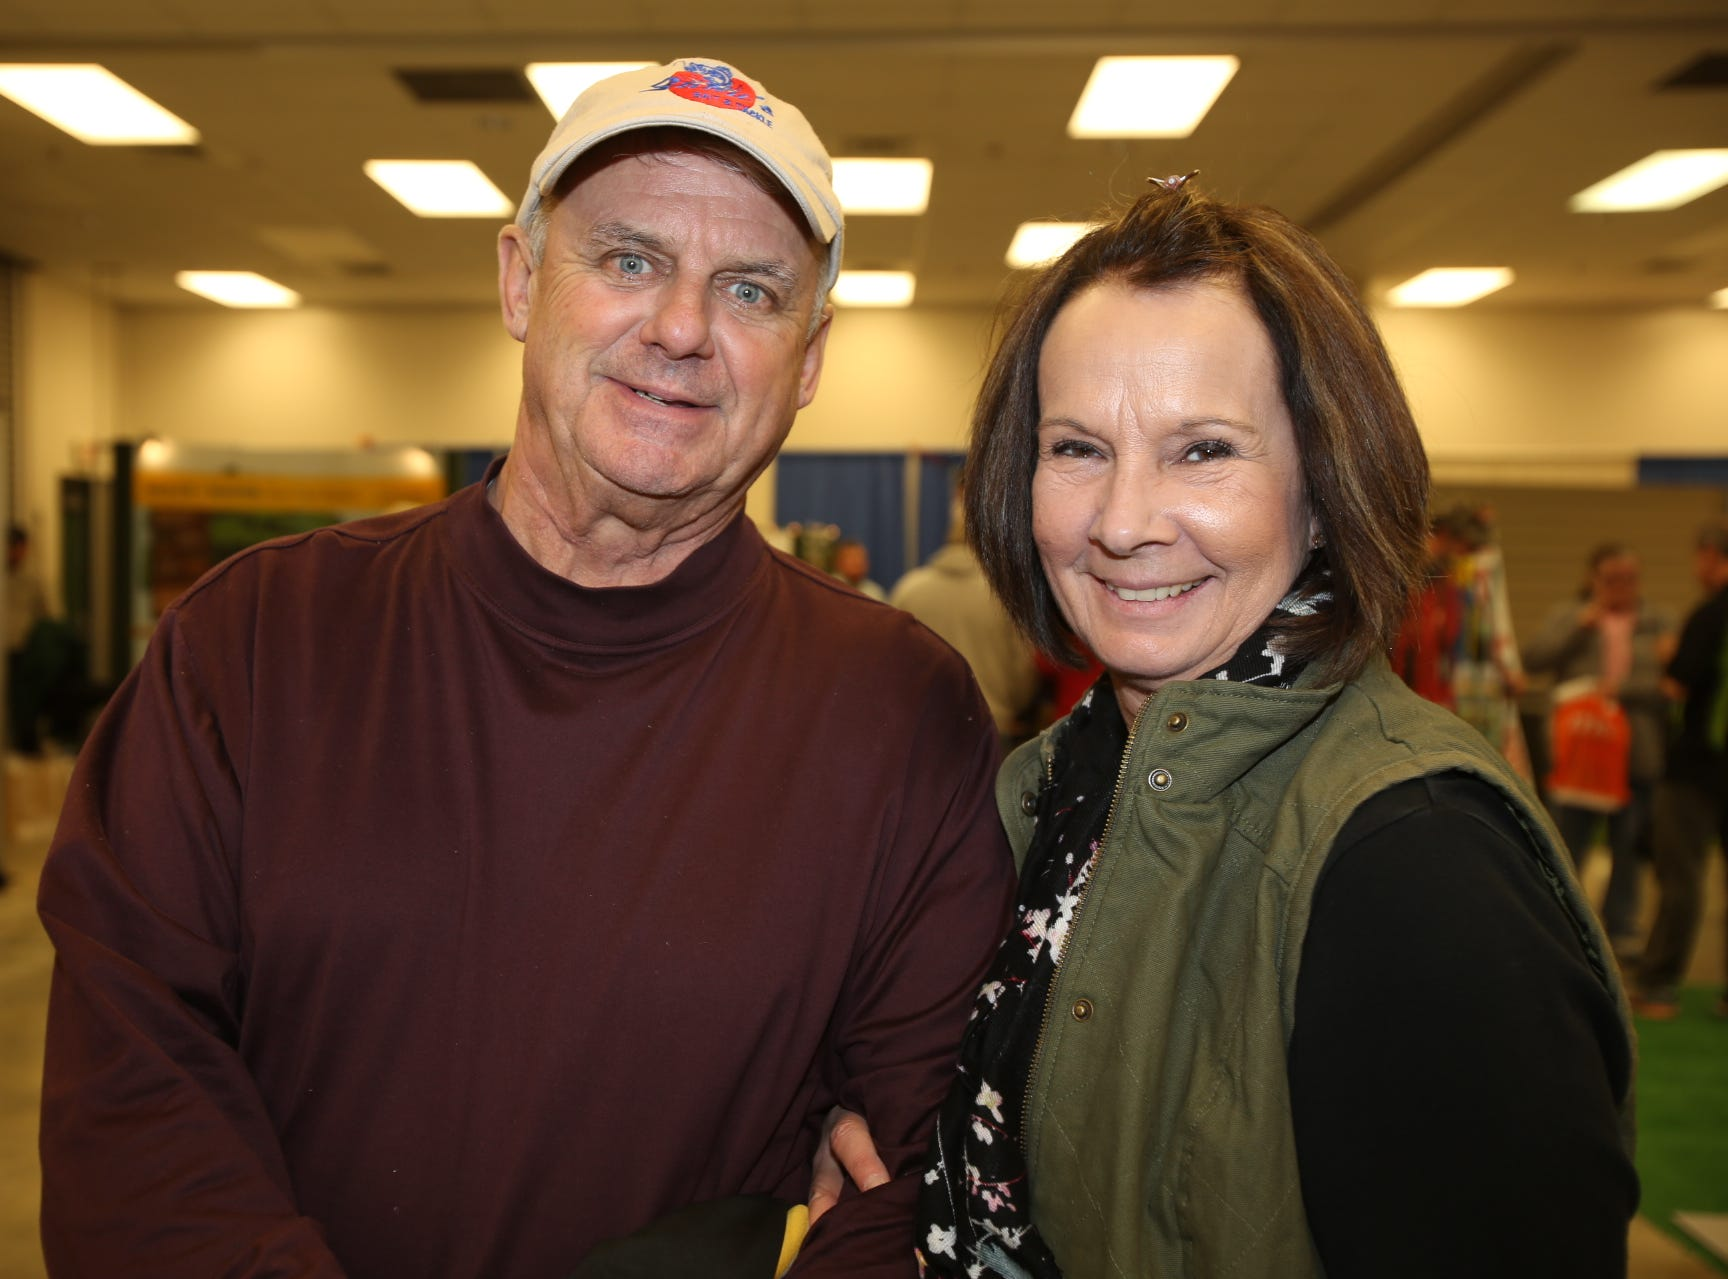 Rich and Lesley Zahn